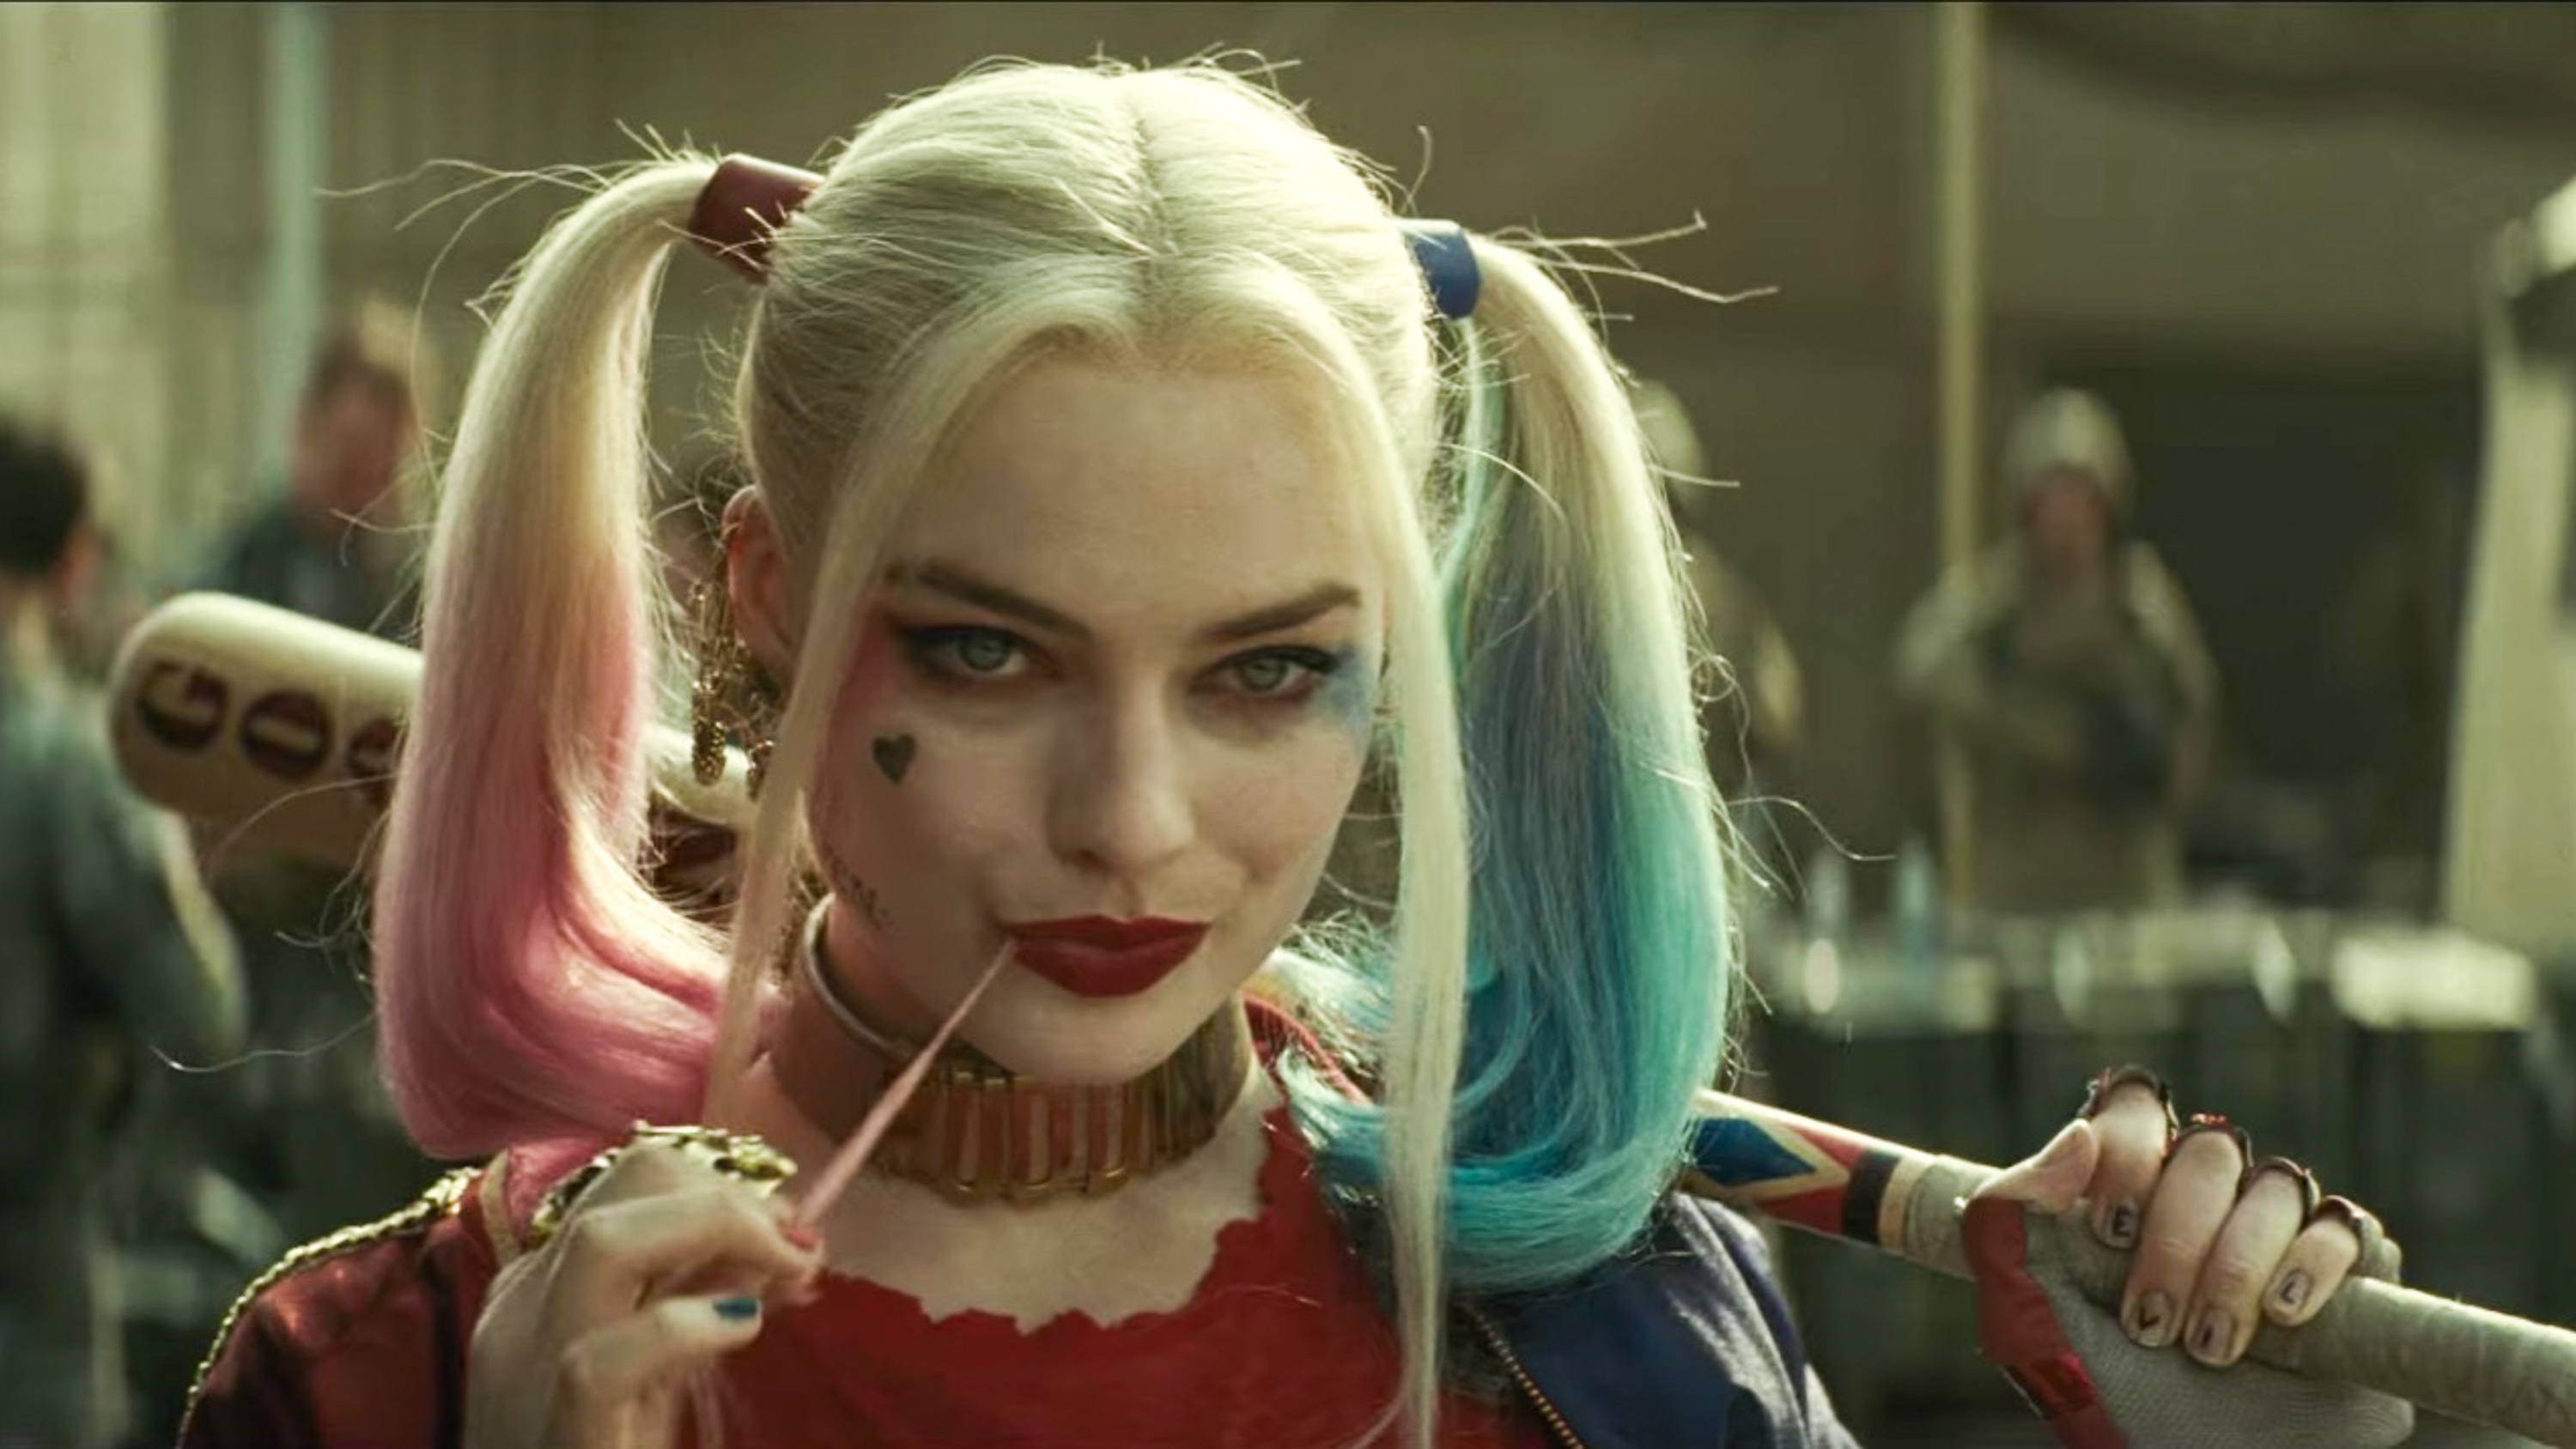 WATCH Suicide Squad trailer drops with Deadshot Joker